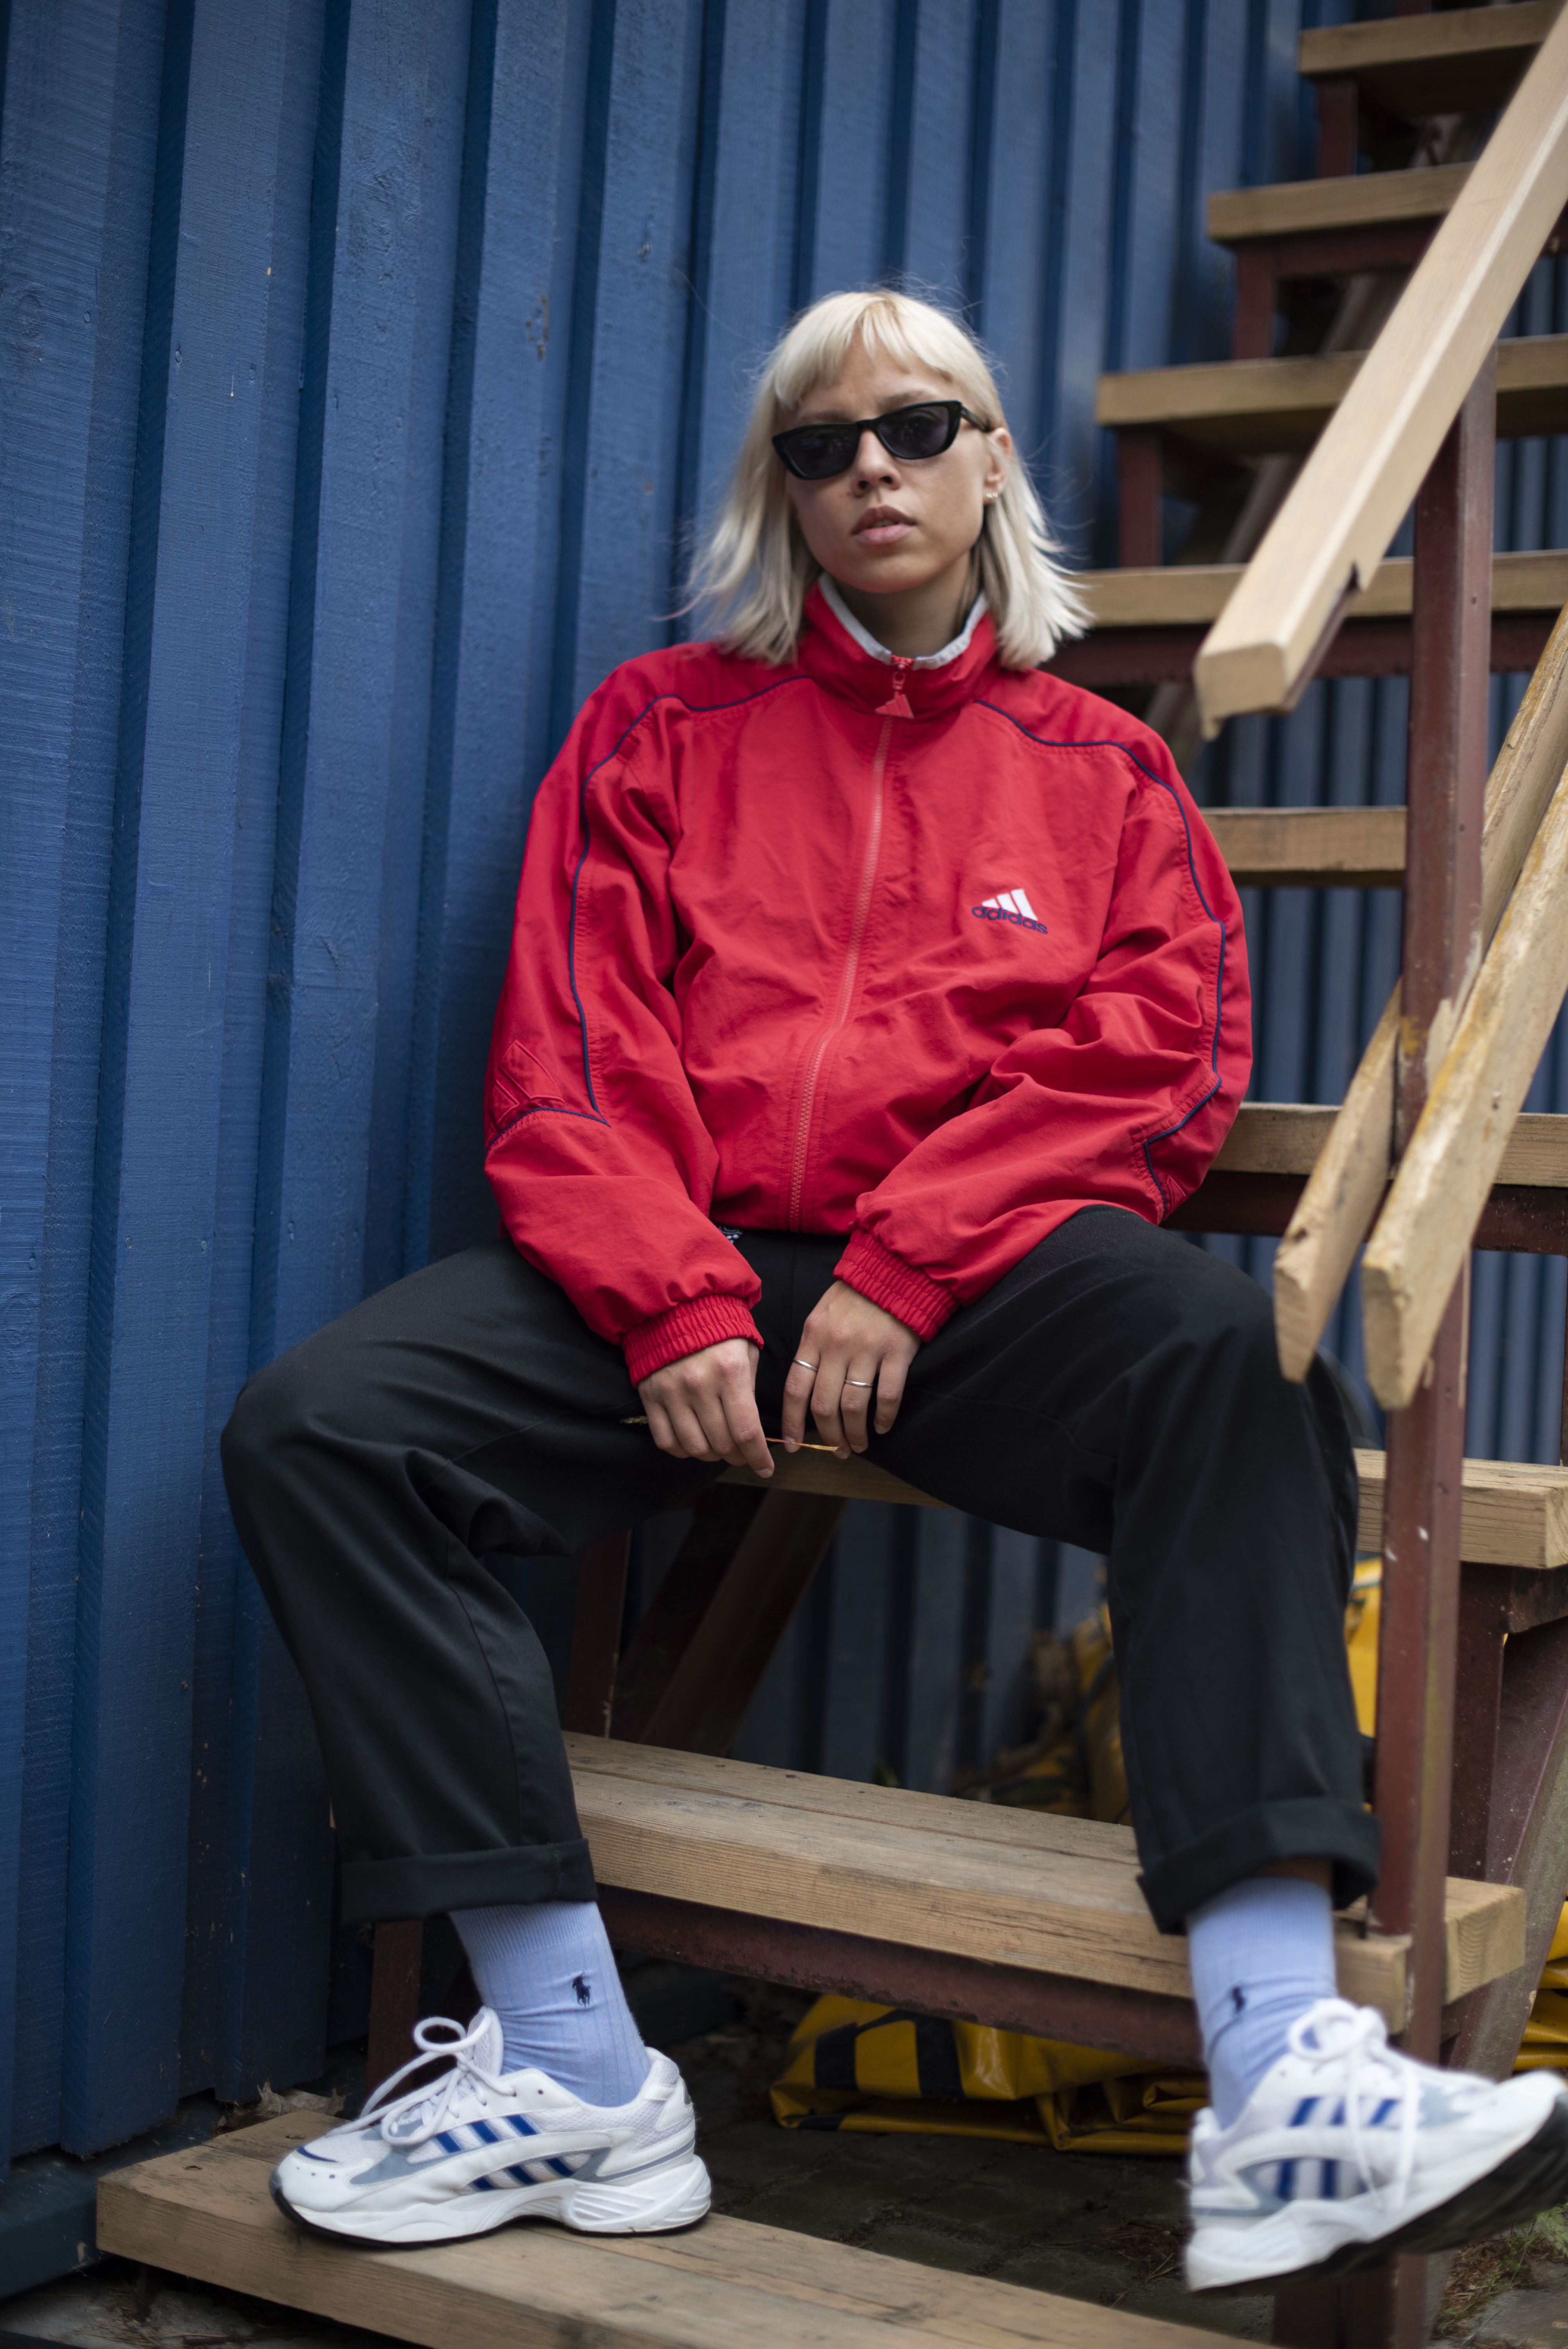 Adidas Red Vintage Windbreaker And Adidas Old School Sneakers 90s Streetwear Vintage Clothes Shop Vintage Outfits Sport Outfits